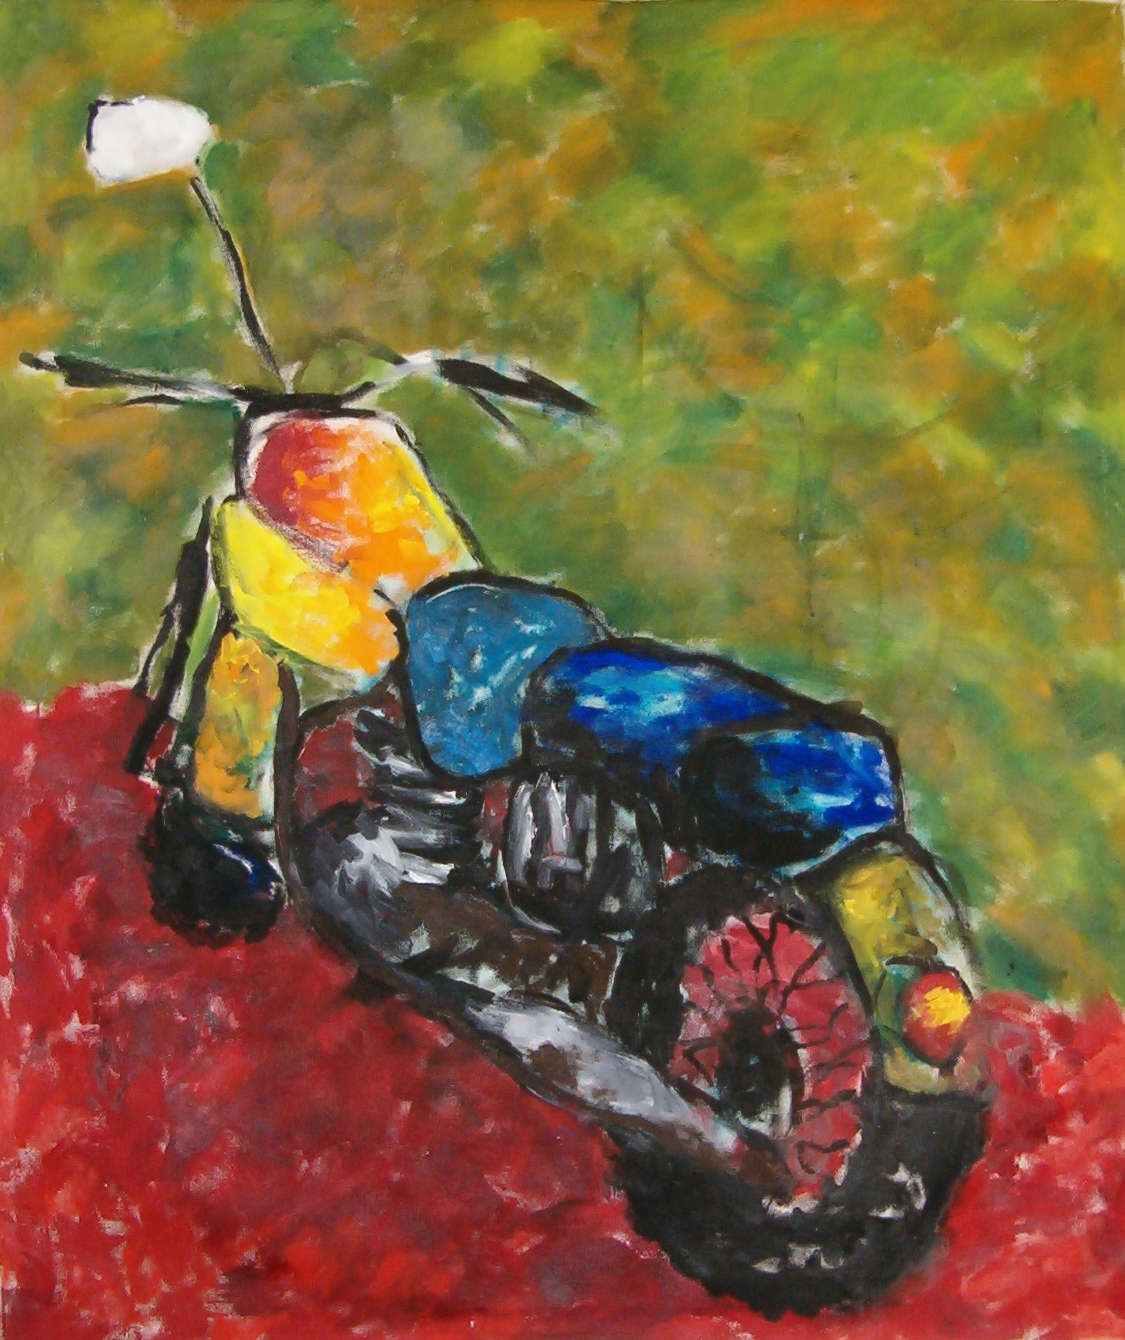 The Motorcycle painting by Dale Sprague oil on canvas done in the abstract impressionist style